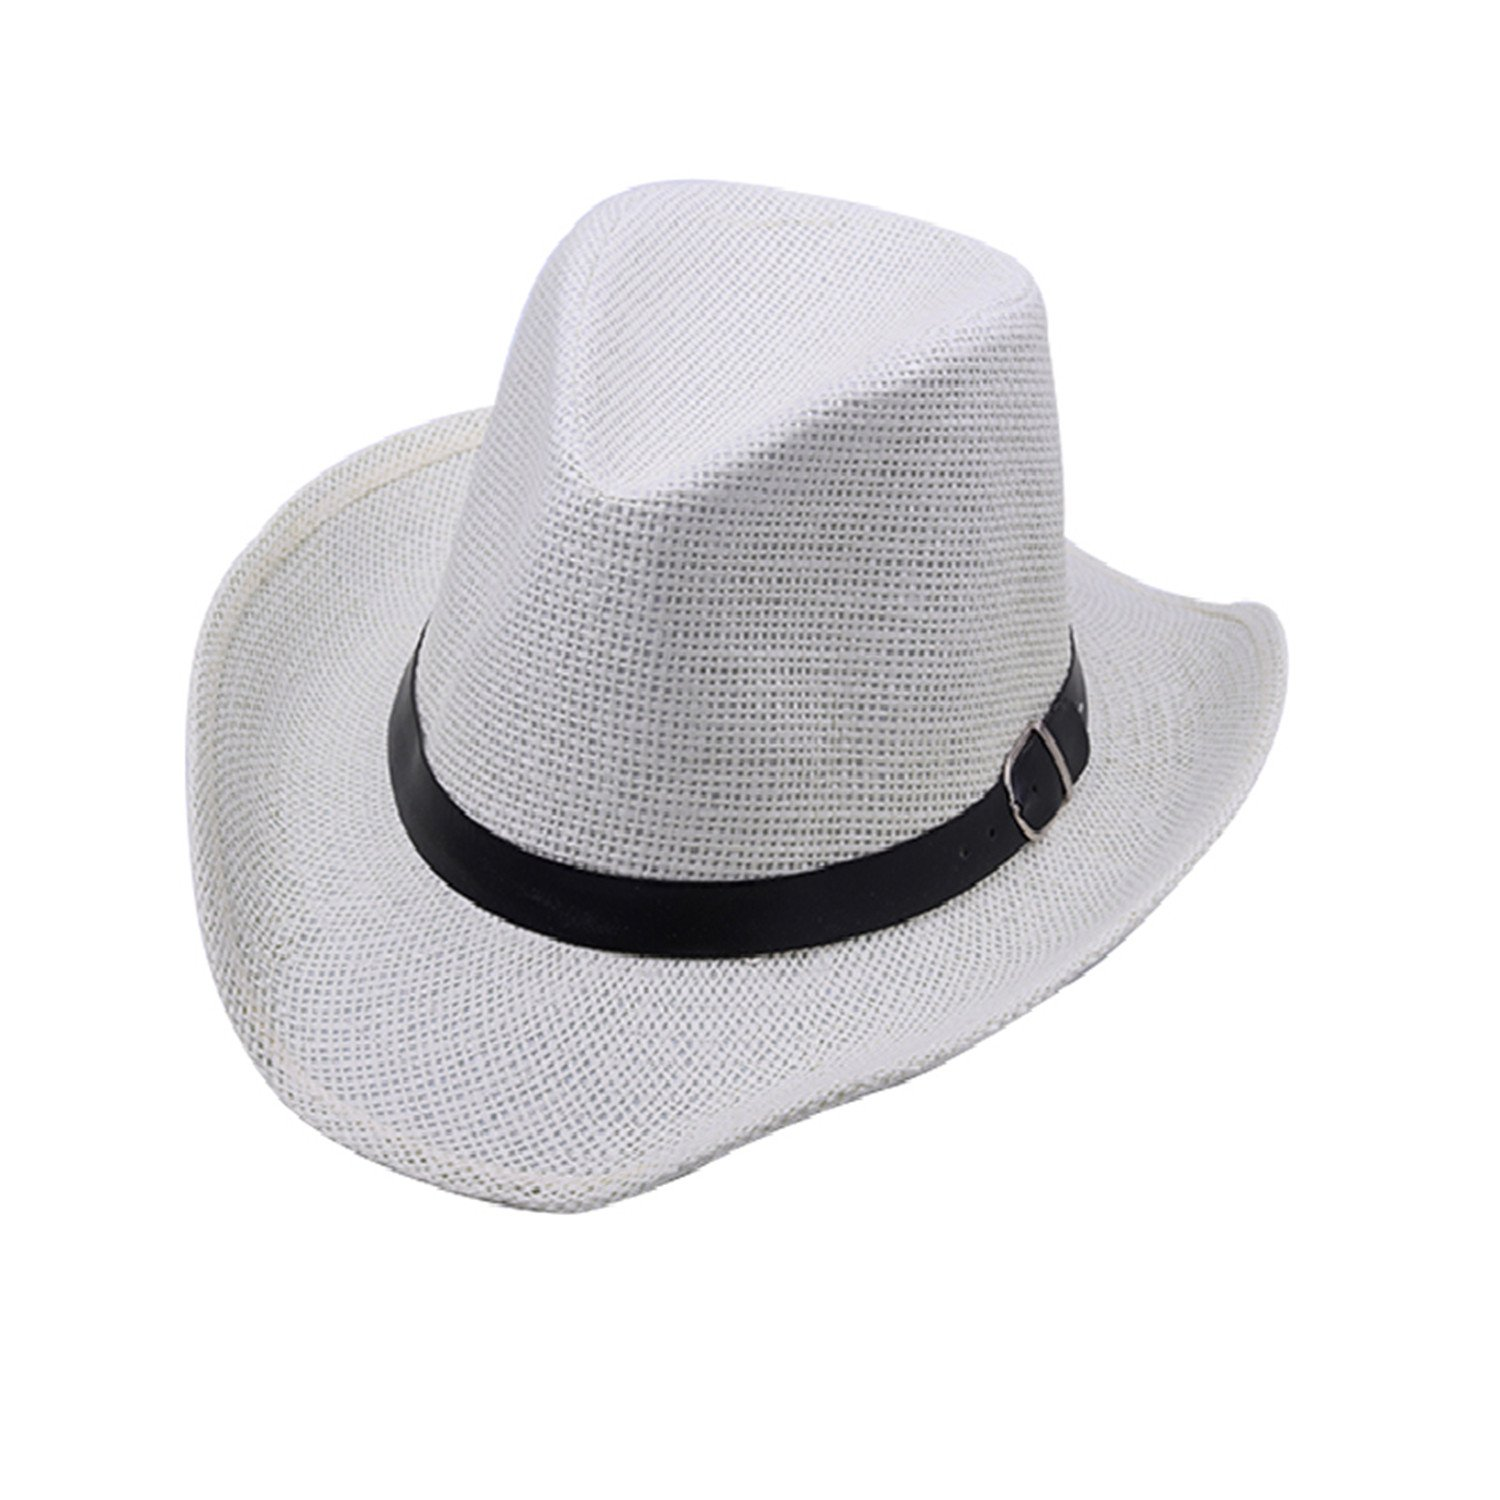 Novel Summer Men and Women Cowboy Hat Wide Brimmed Jazz Hats Feminino Sun Straw Hat Caps Beach Hat Chapeau Band Sonne Women